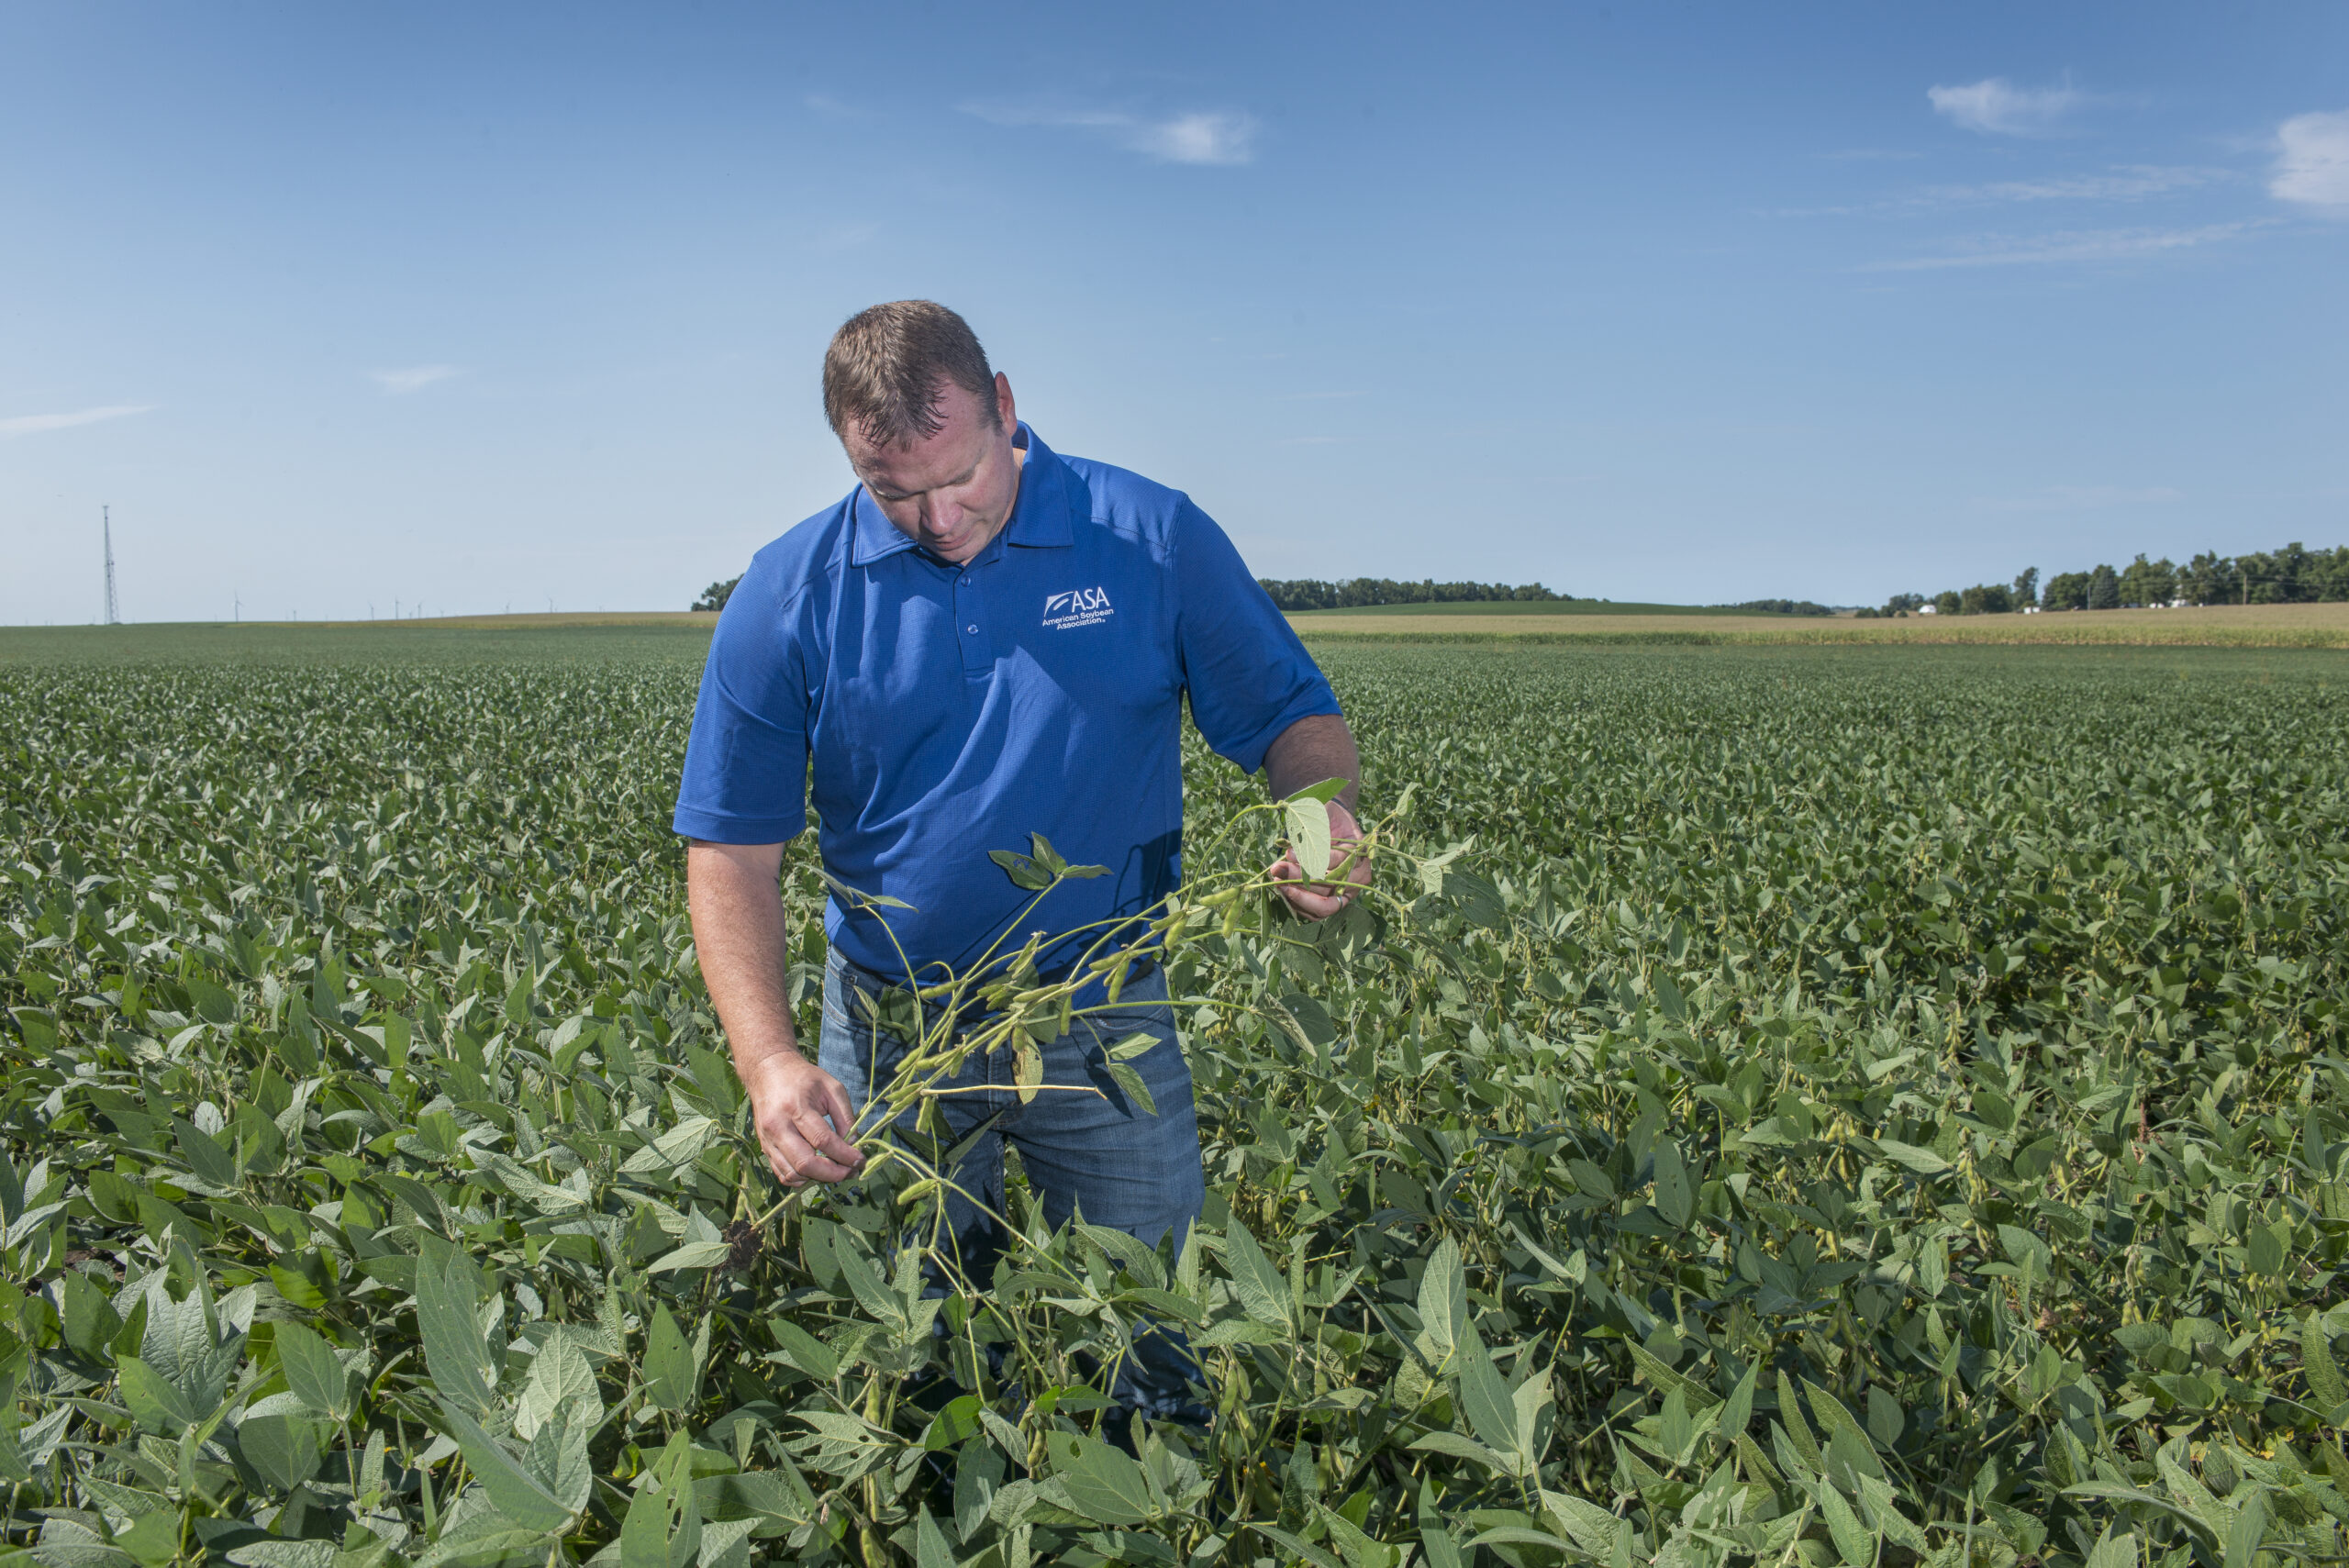 It's More than Conservation: ASA pushes expanded soybean sustainability agenda